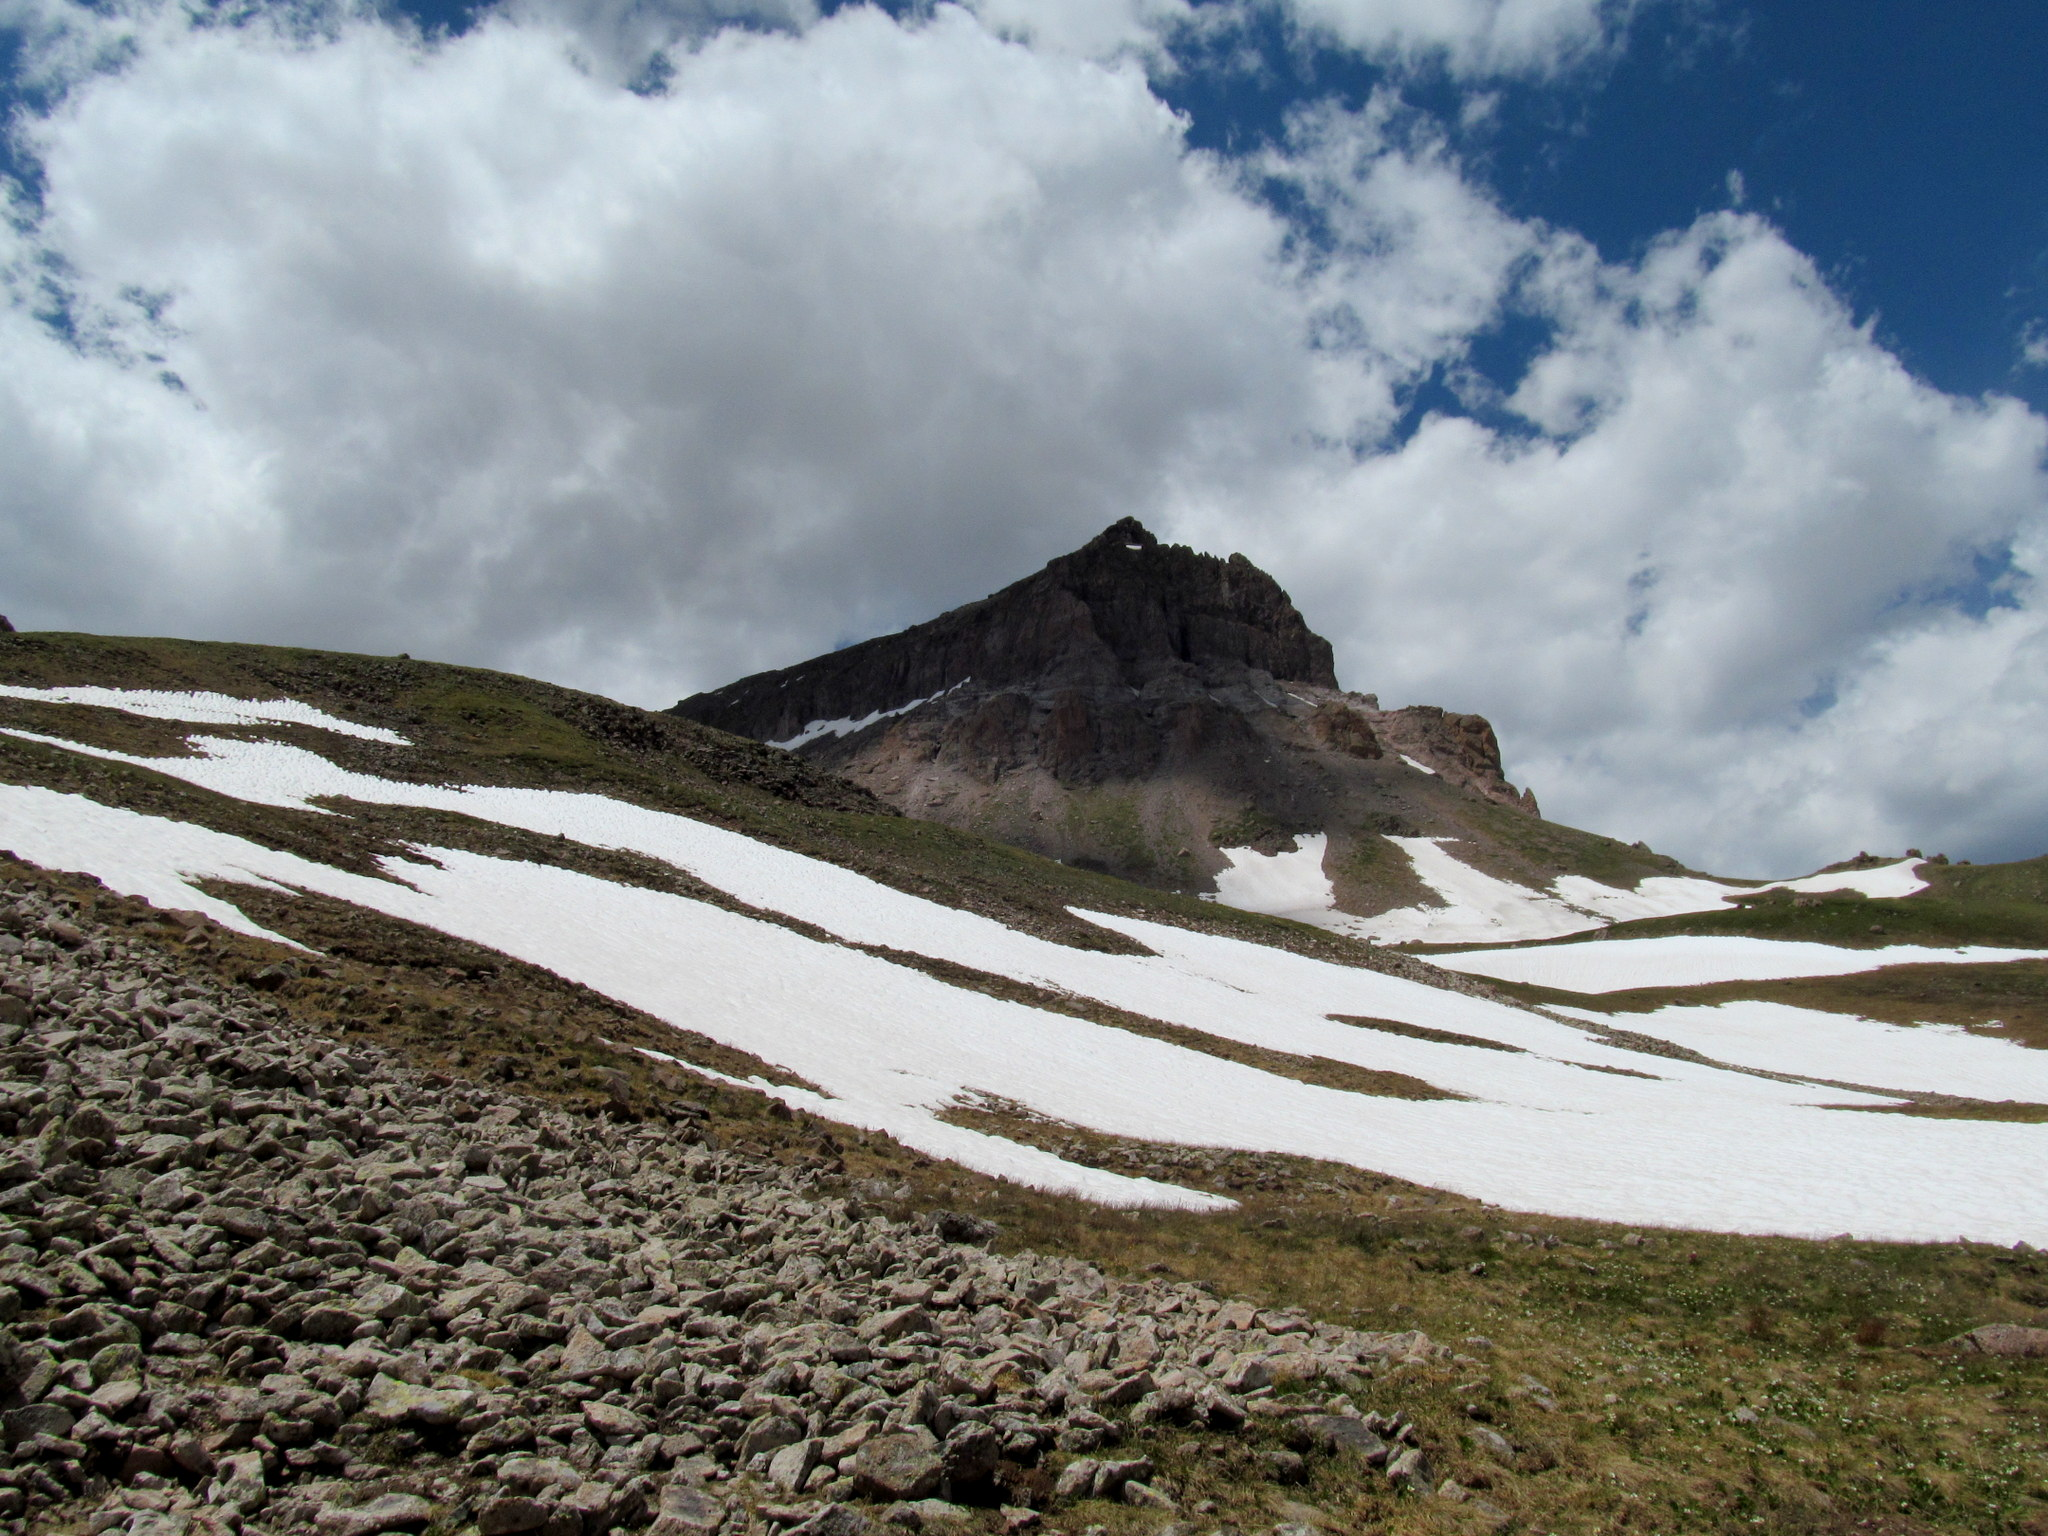 Photo: A dark Uncompahgre Peak during the descent